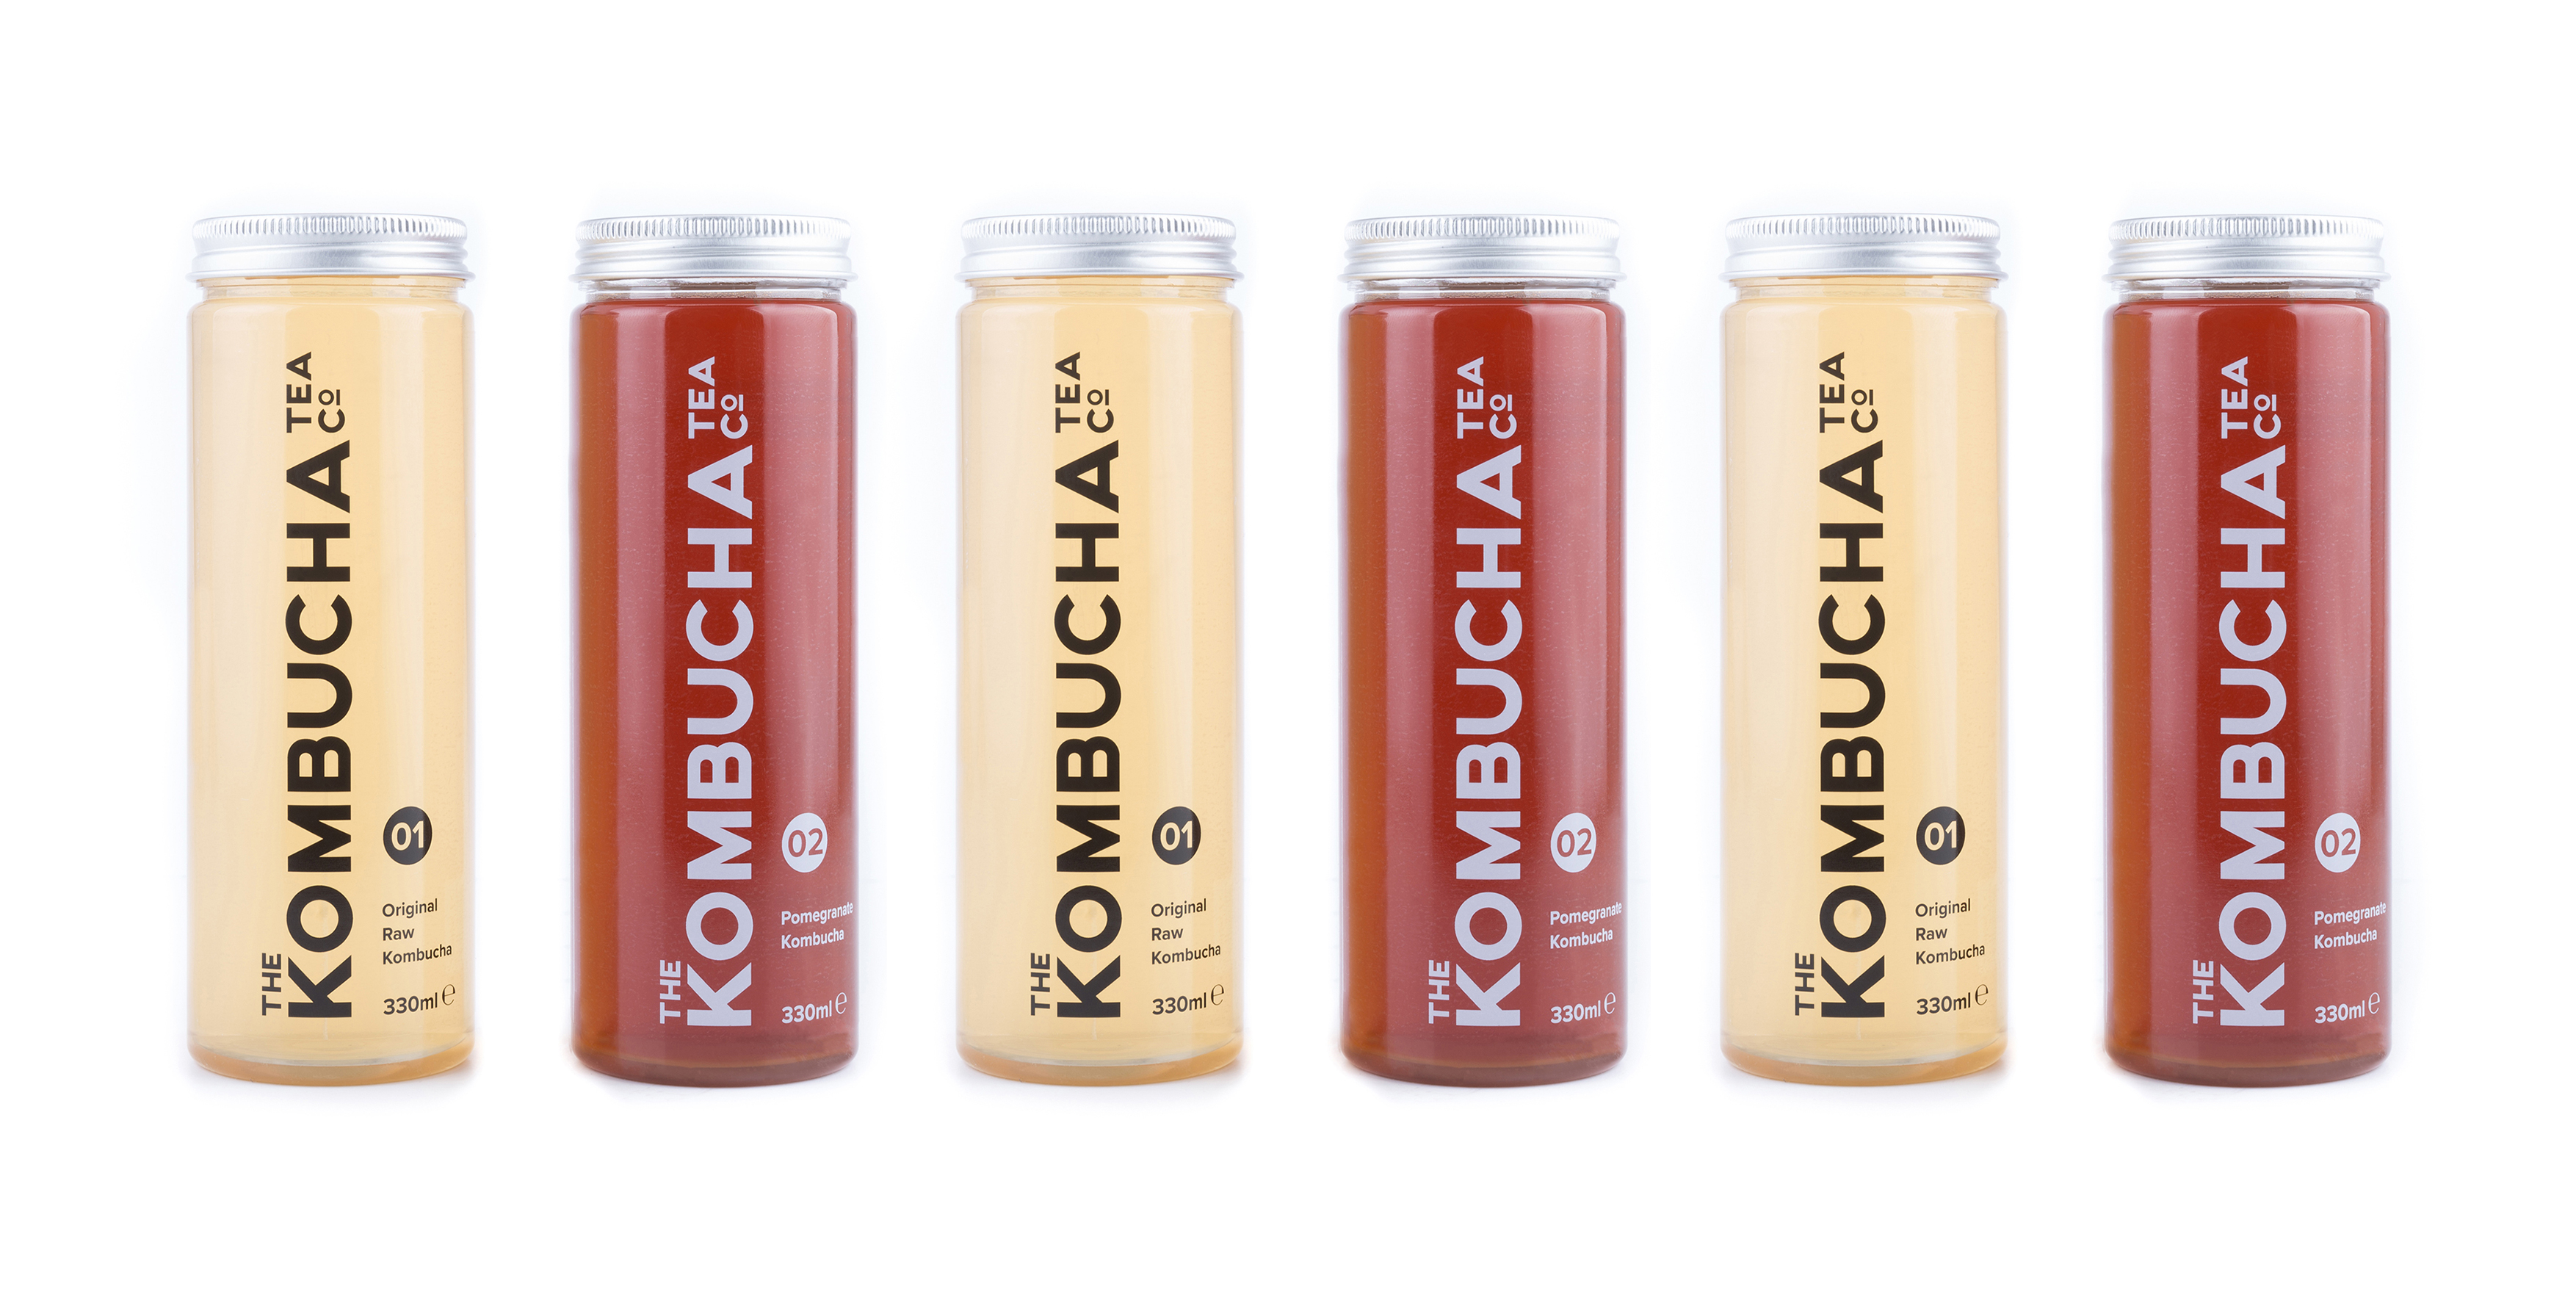 Group Image of The Kombucha Tea Company Branding and Packaging by Toast Food